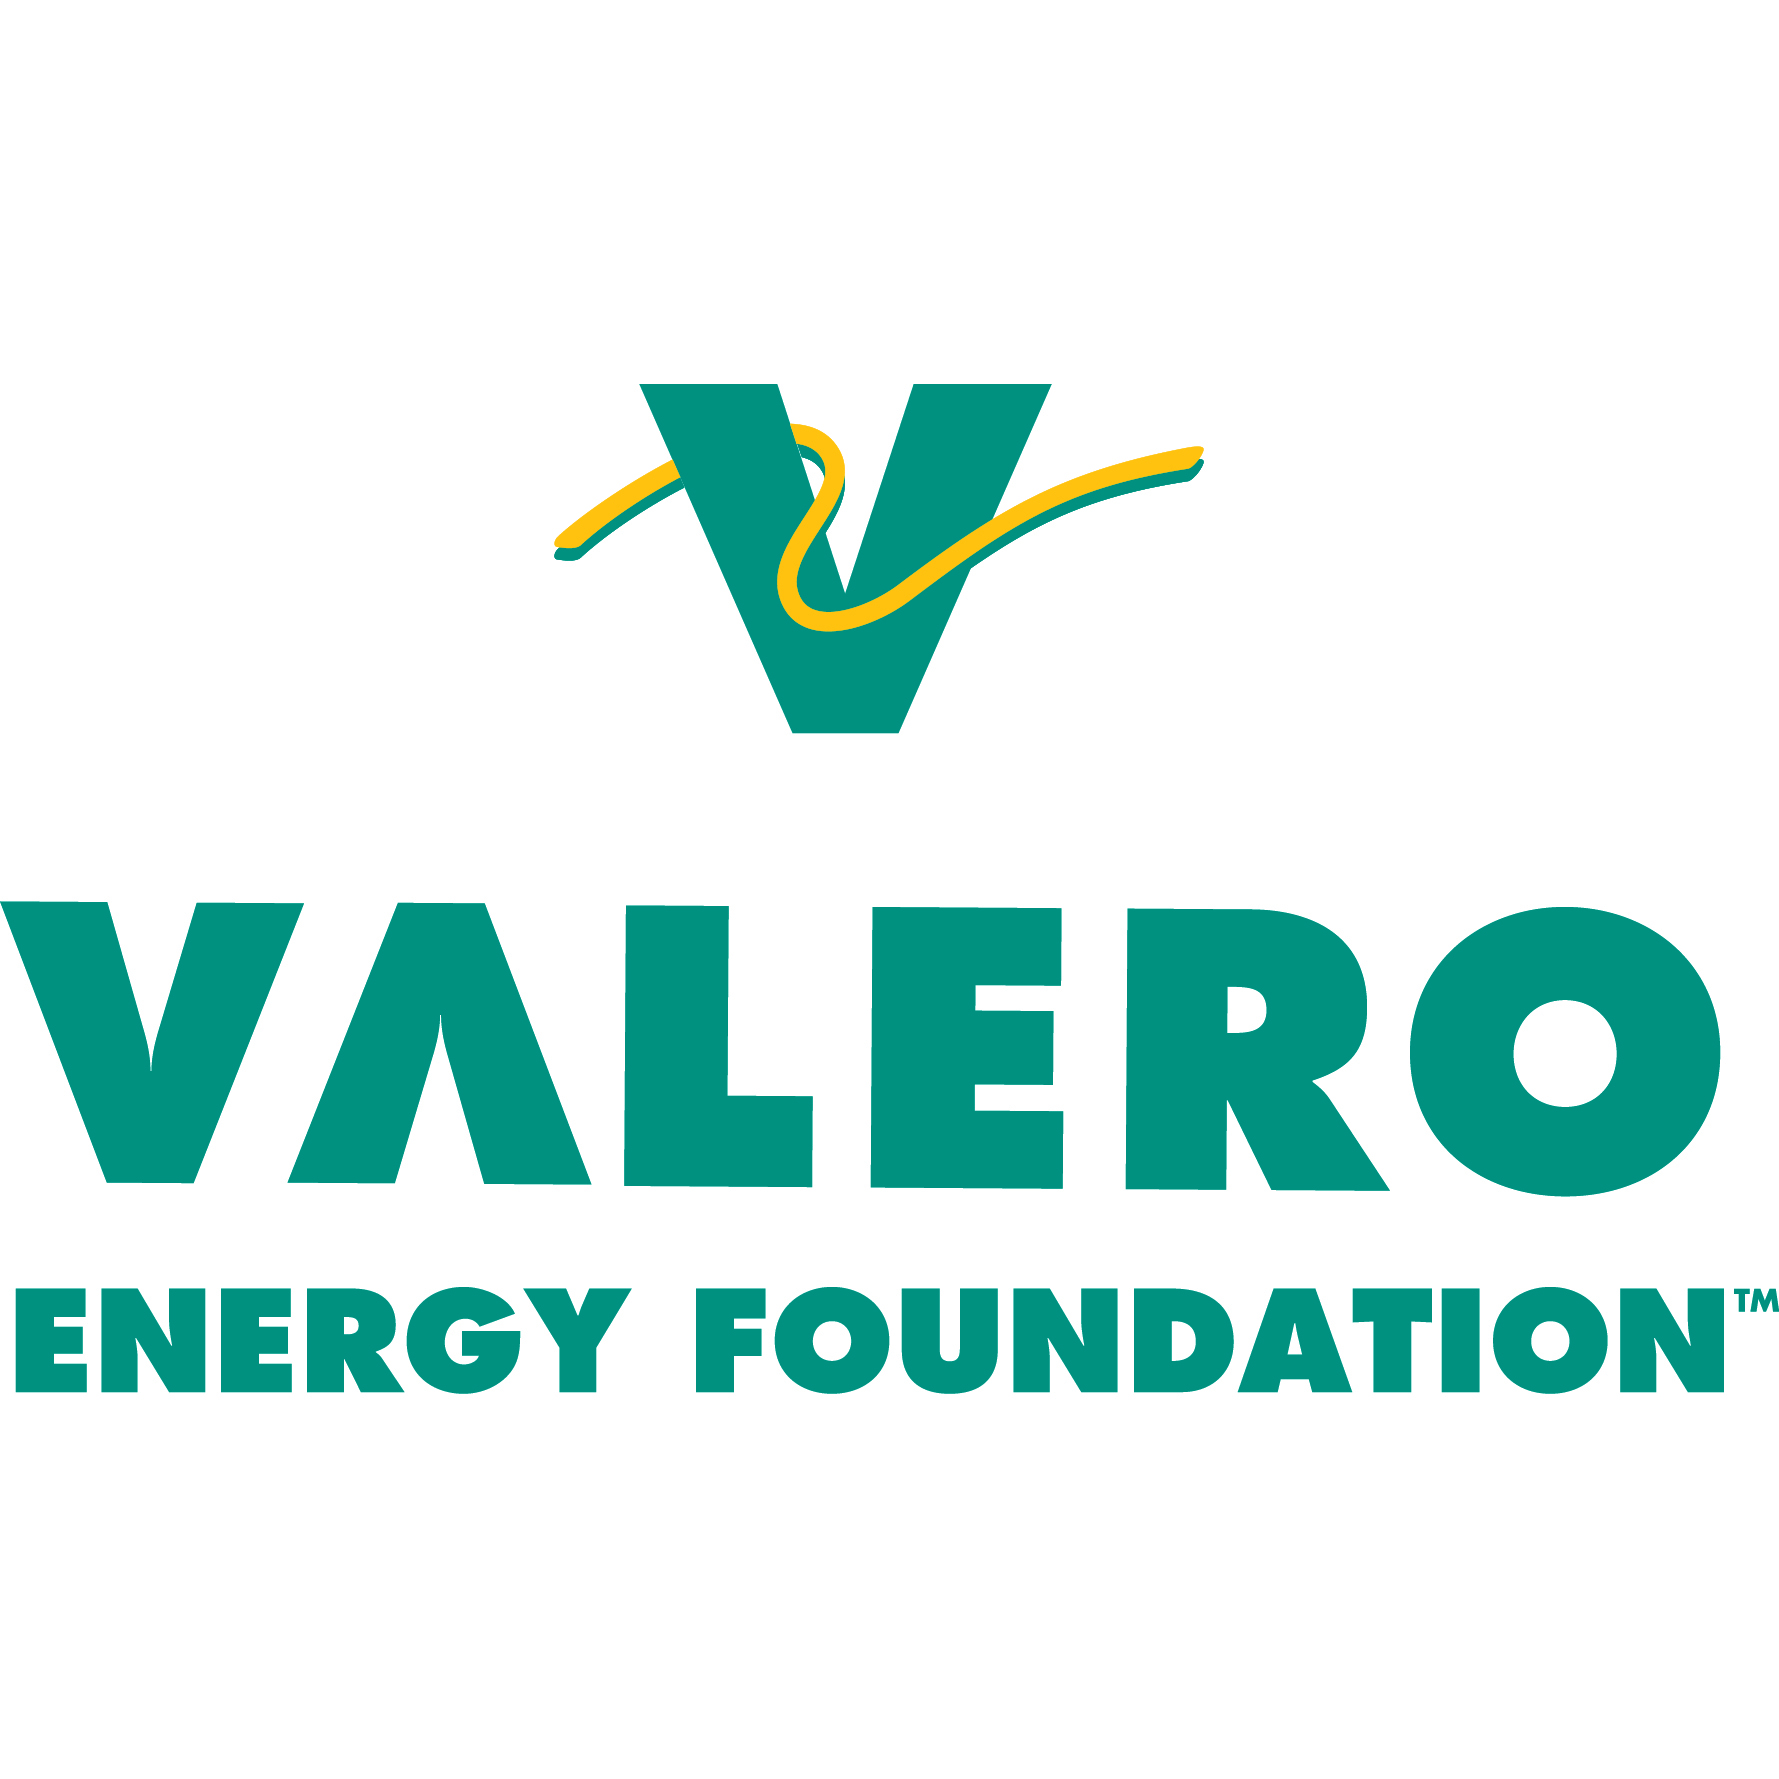 Valero Energy Foundation Logo